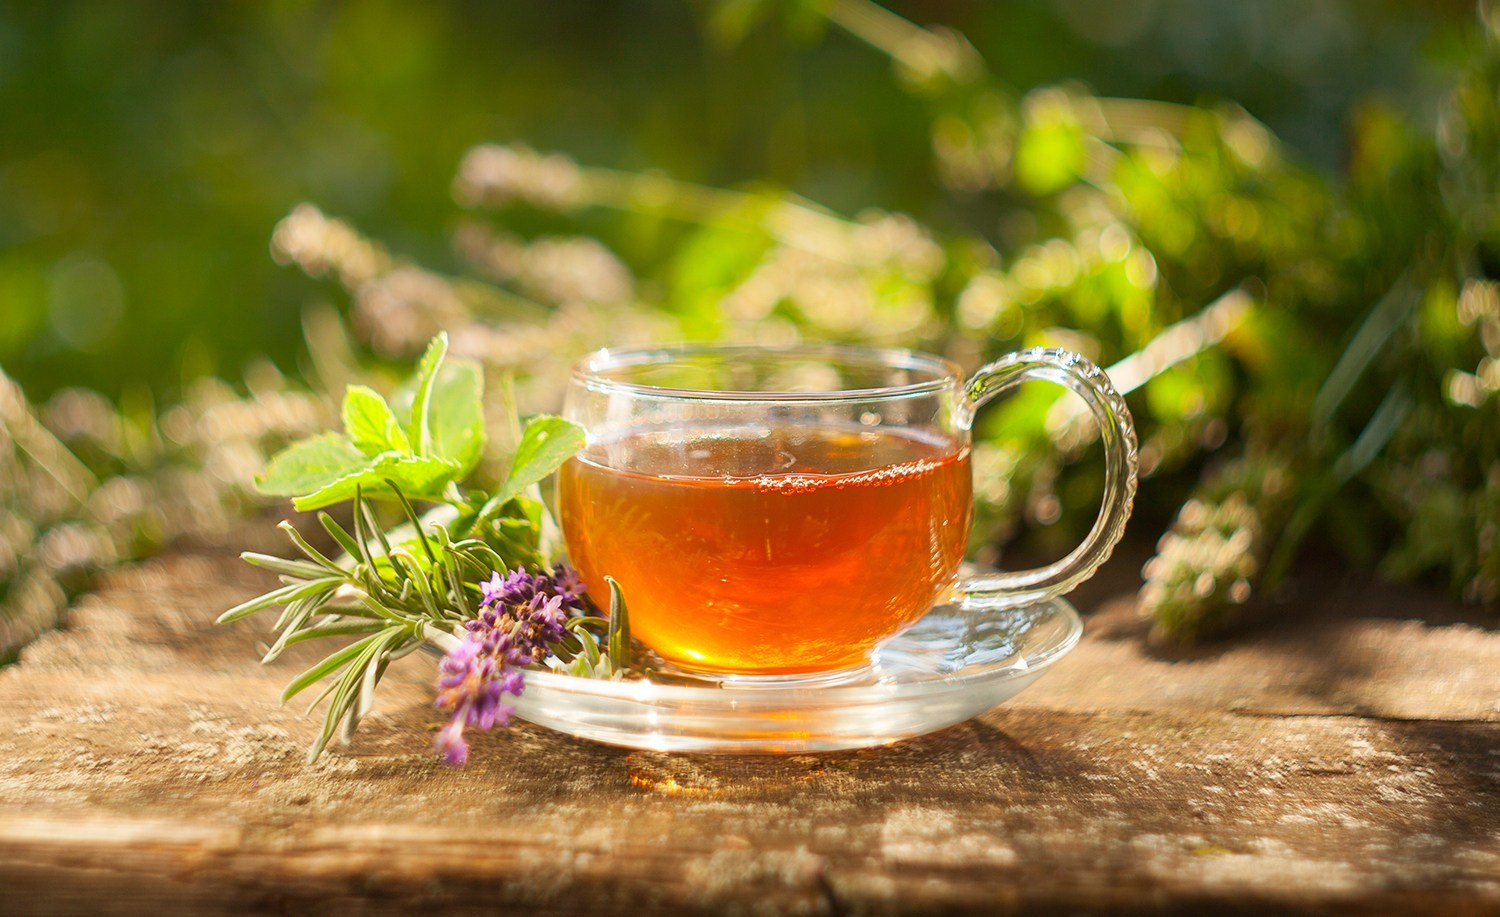 Drinking Herbal Detox Tea To Reap Health Benefits- Few Things To Learn